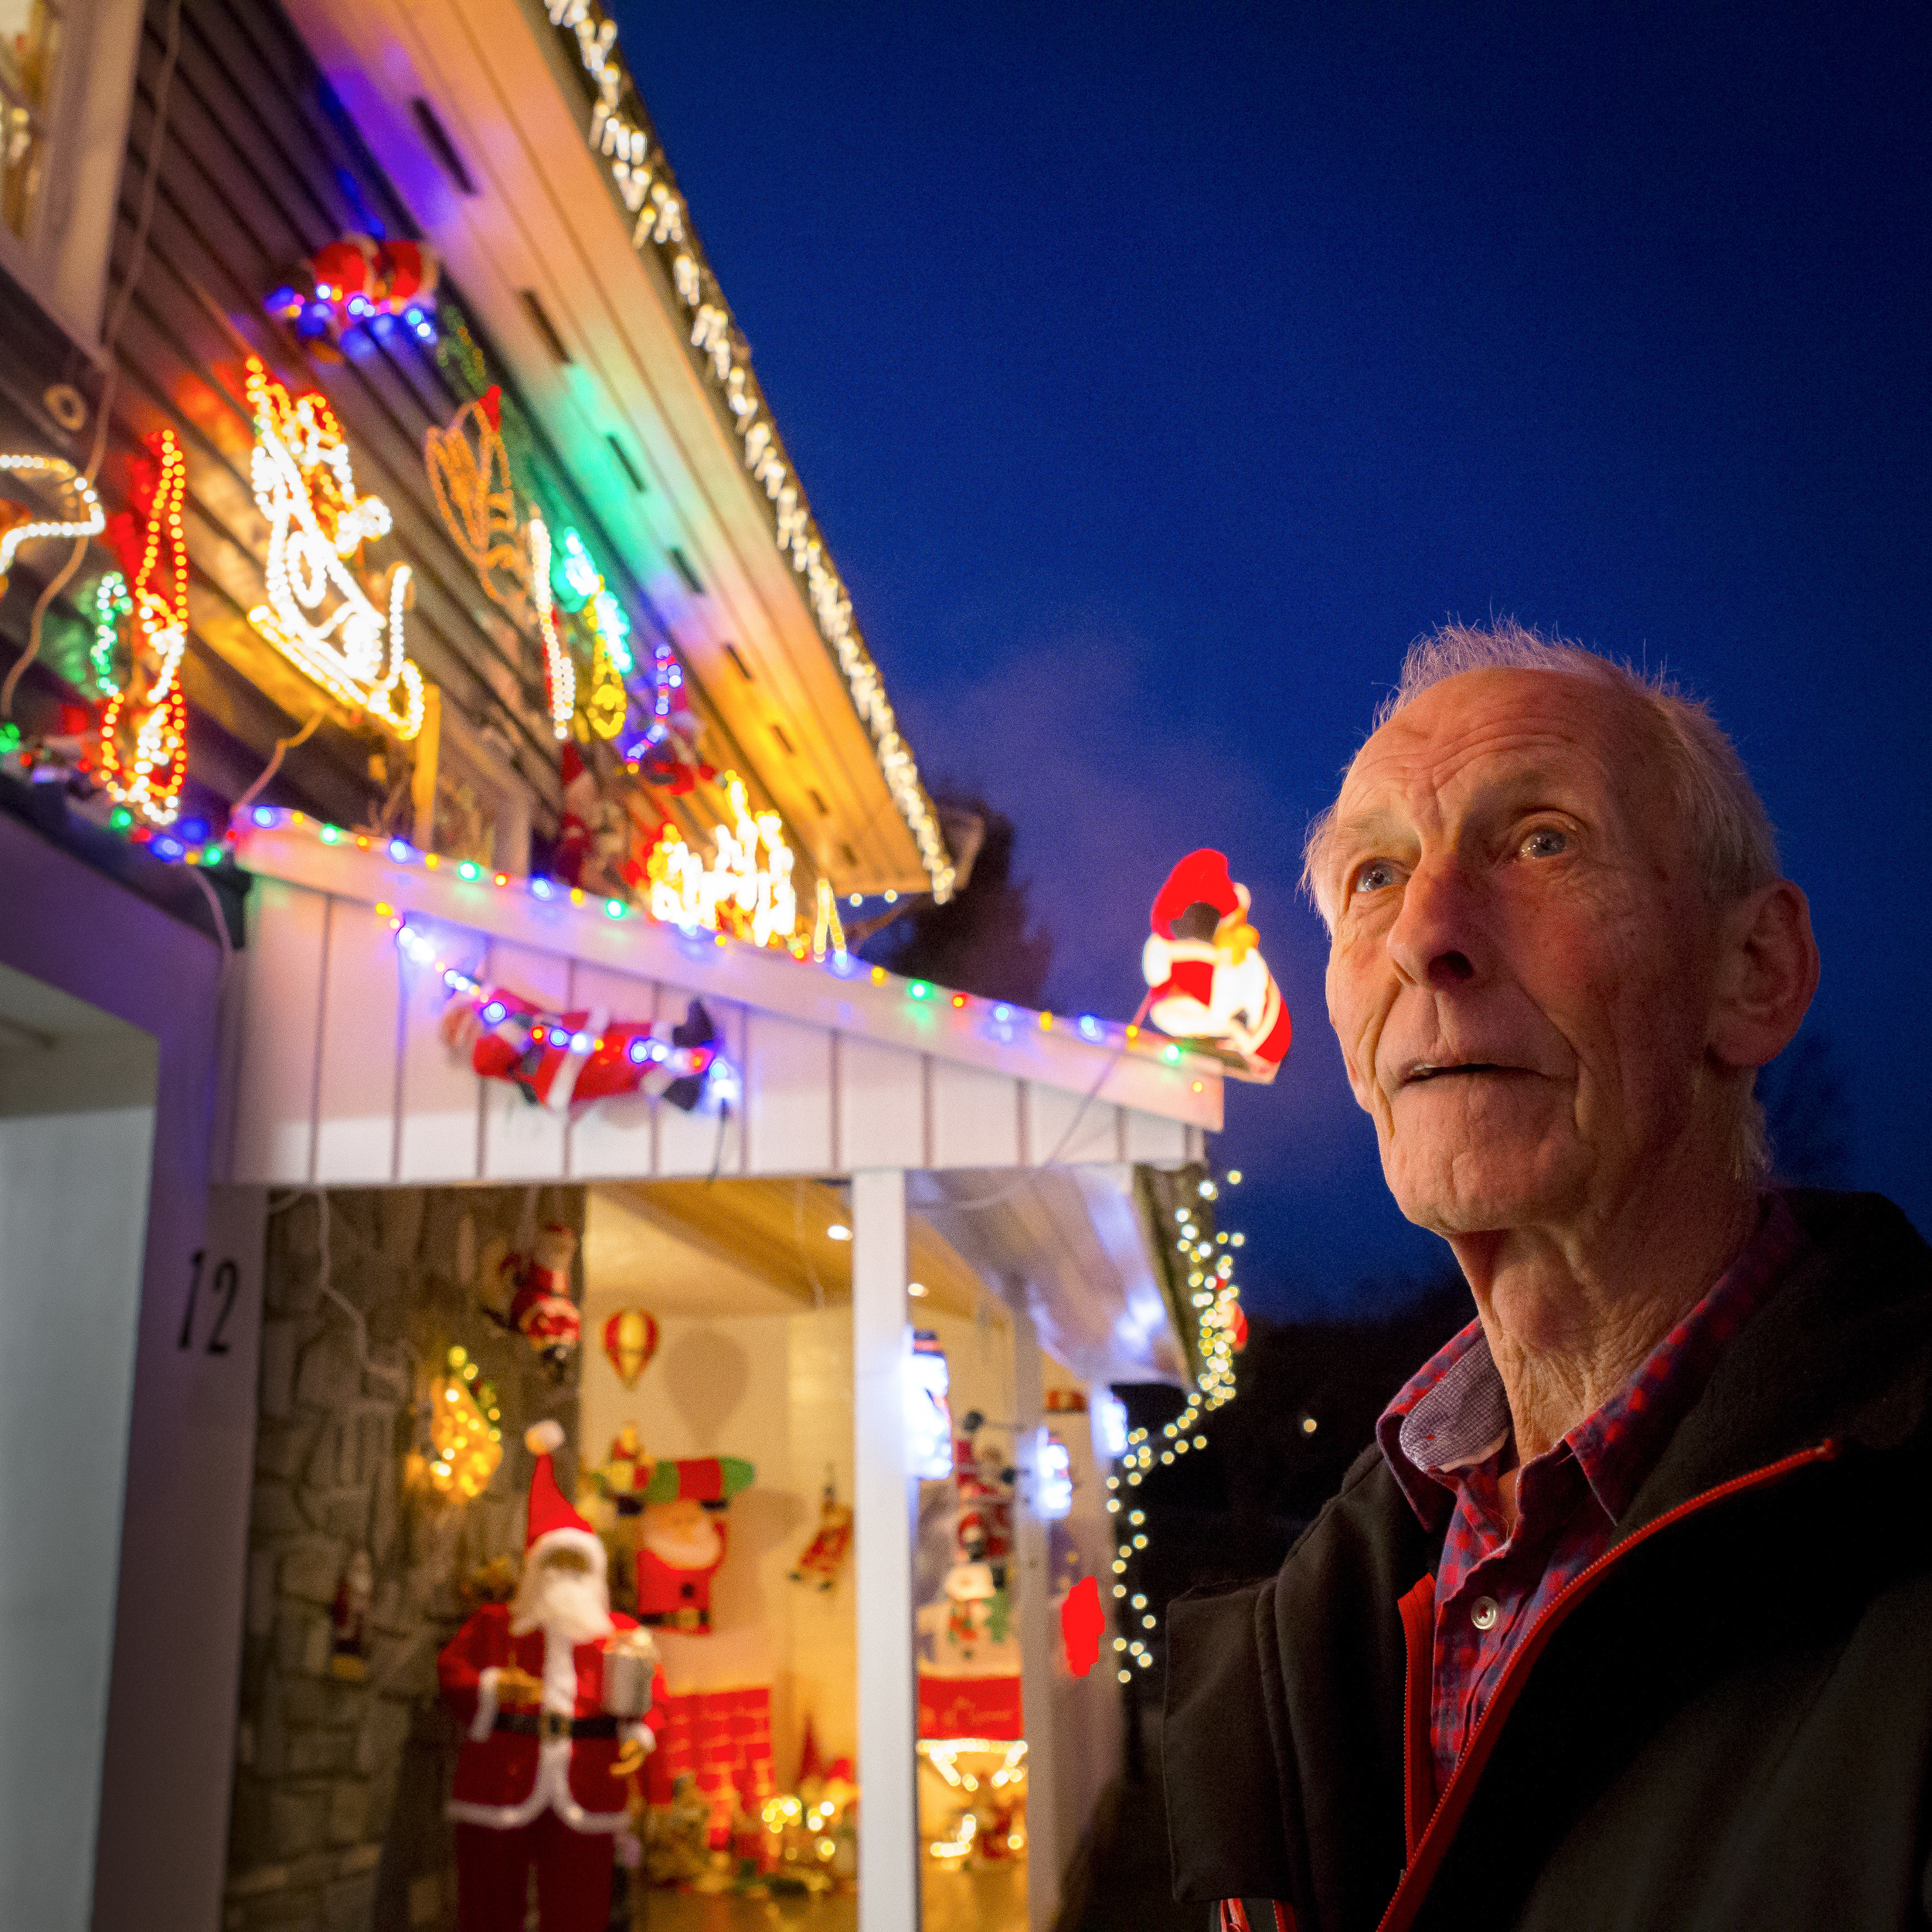 Owner of the Christmas house Tore Kristiansen